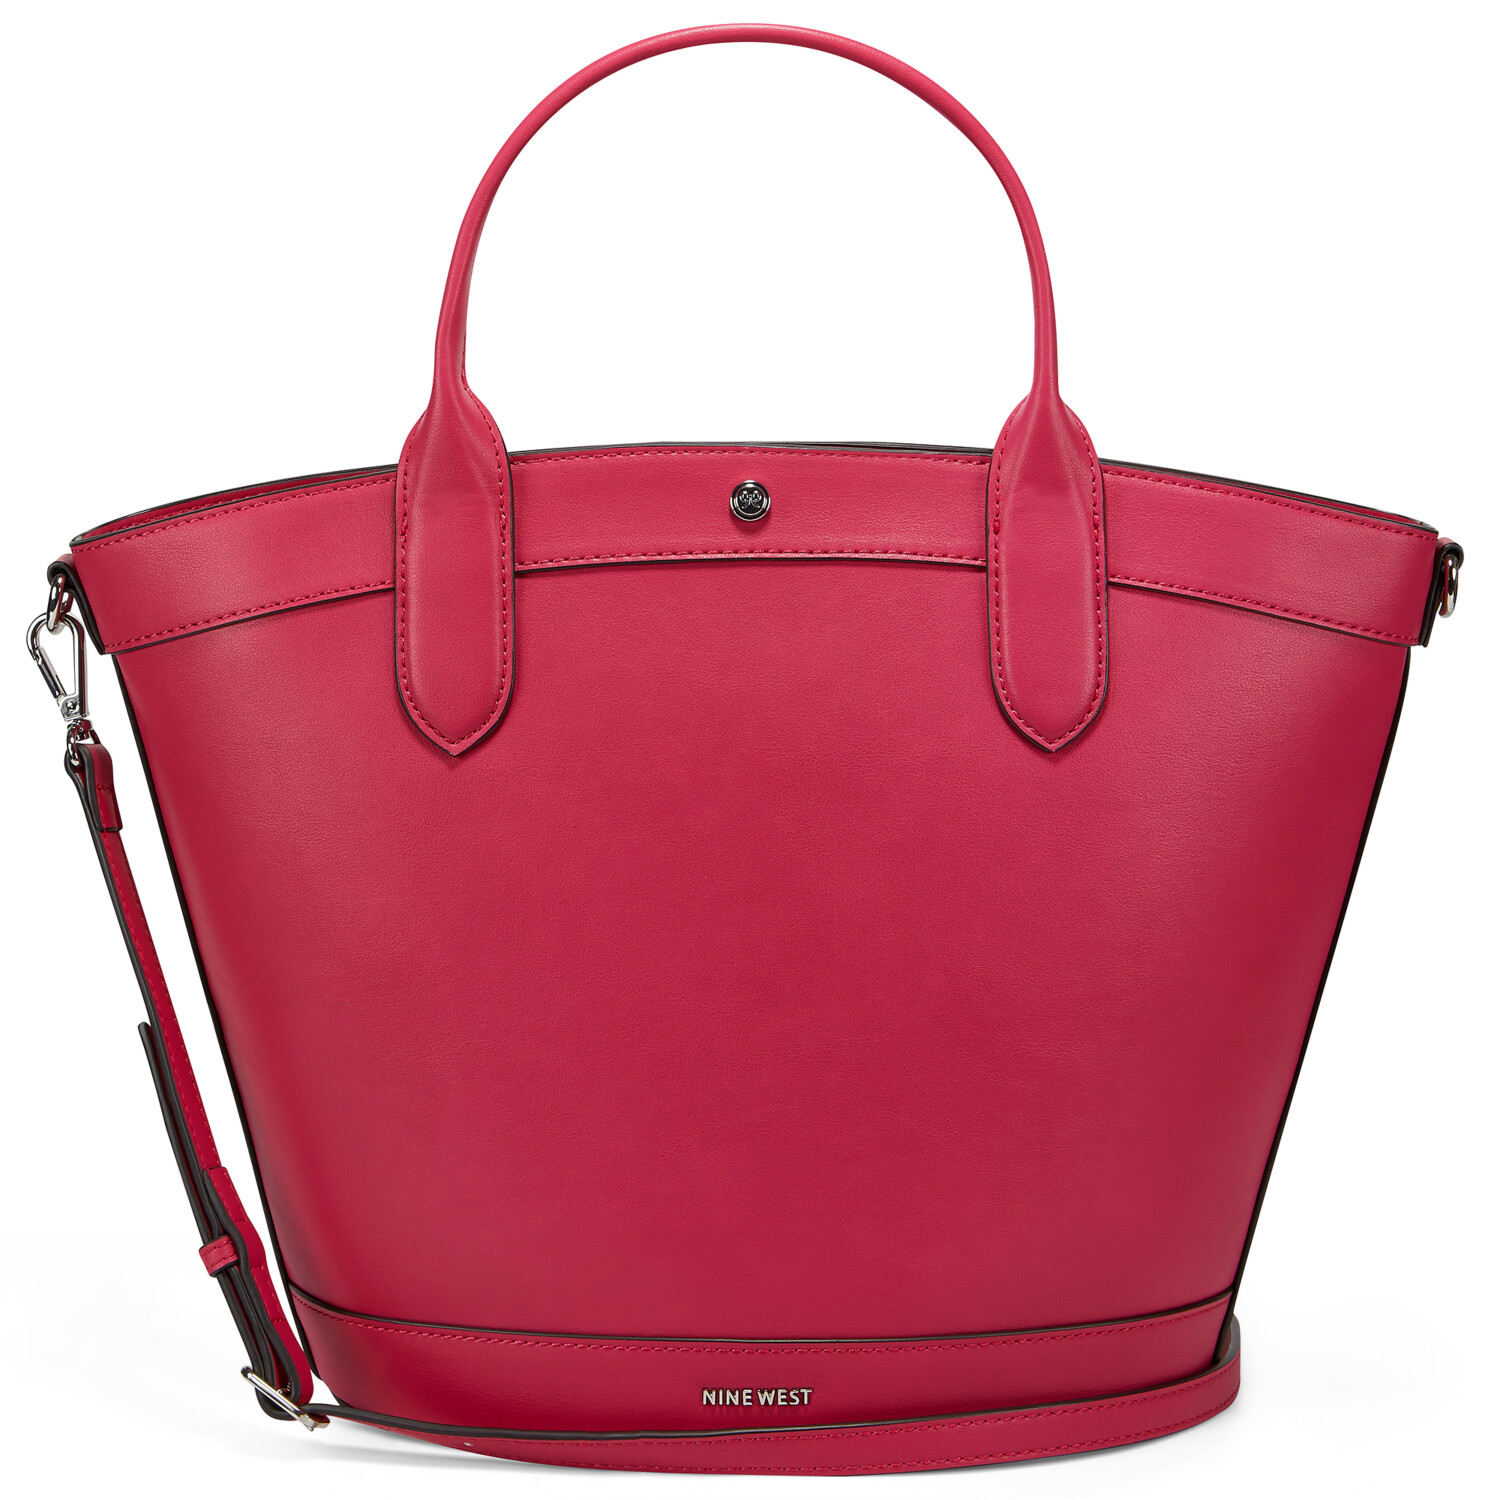 Nine West Women's Norah Tote - Haute Pink